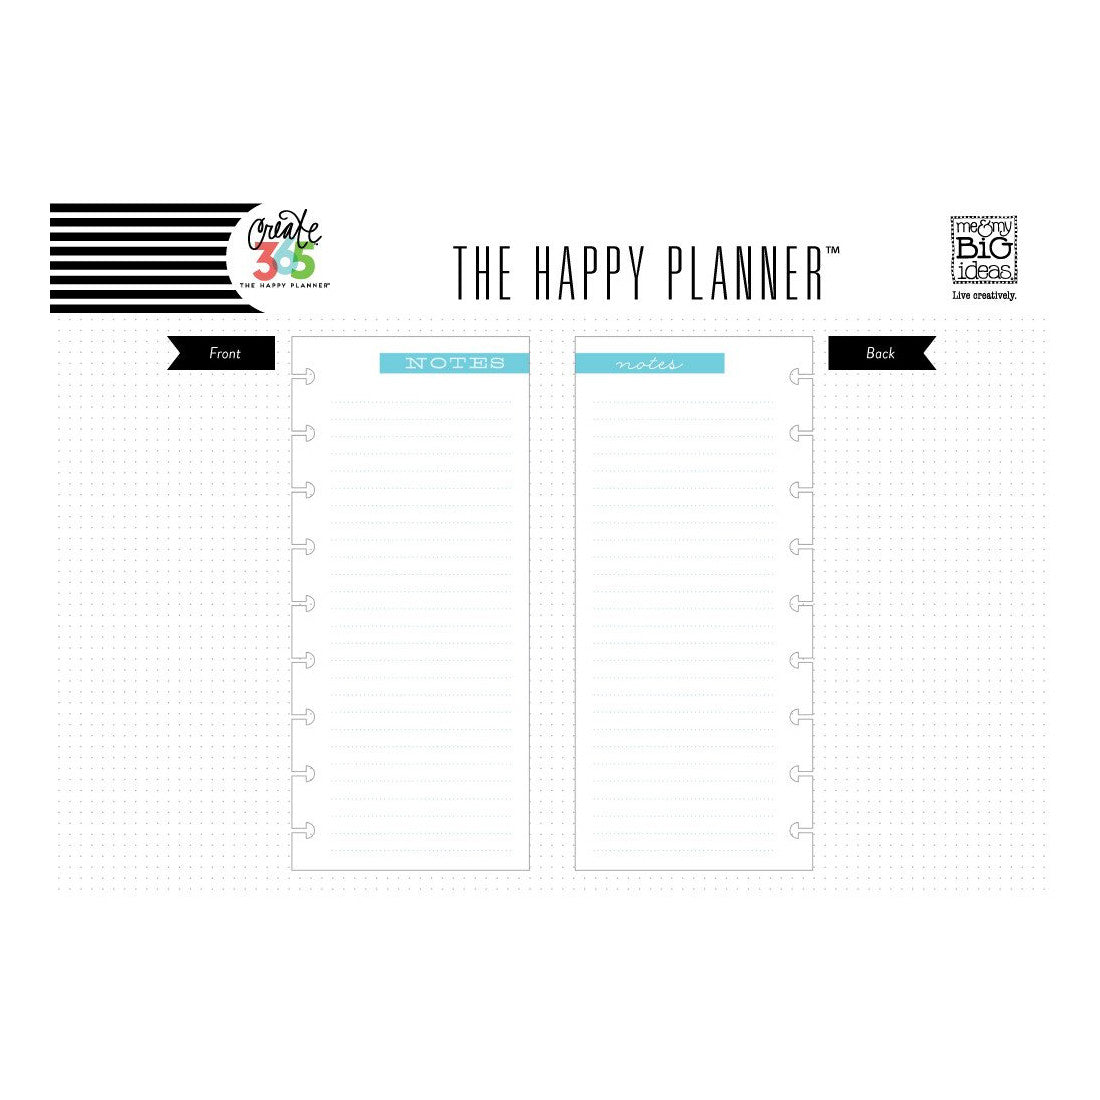 NOTE PAPER - HALF SHEET : CLASSIC HAPPY PLANNER